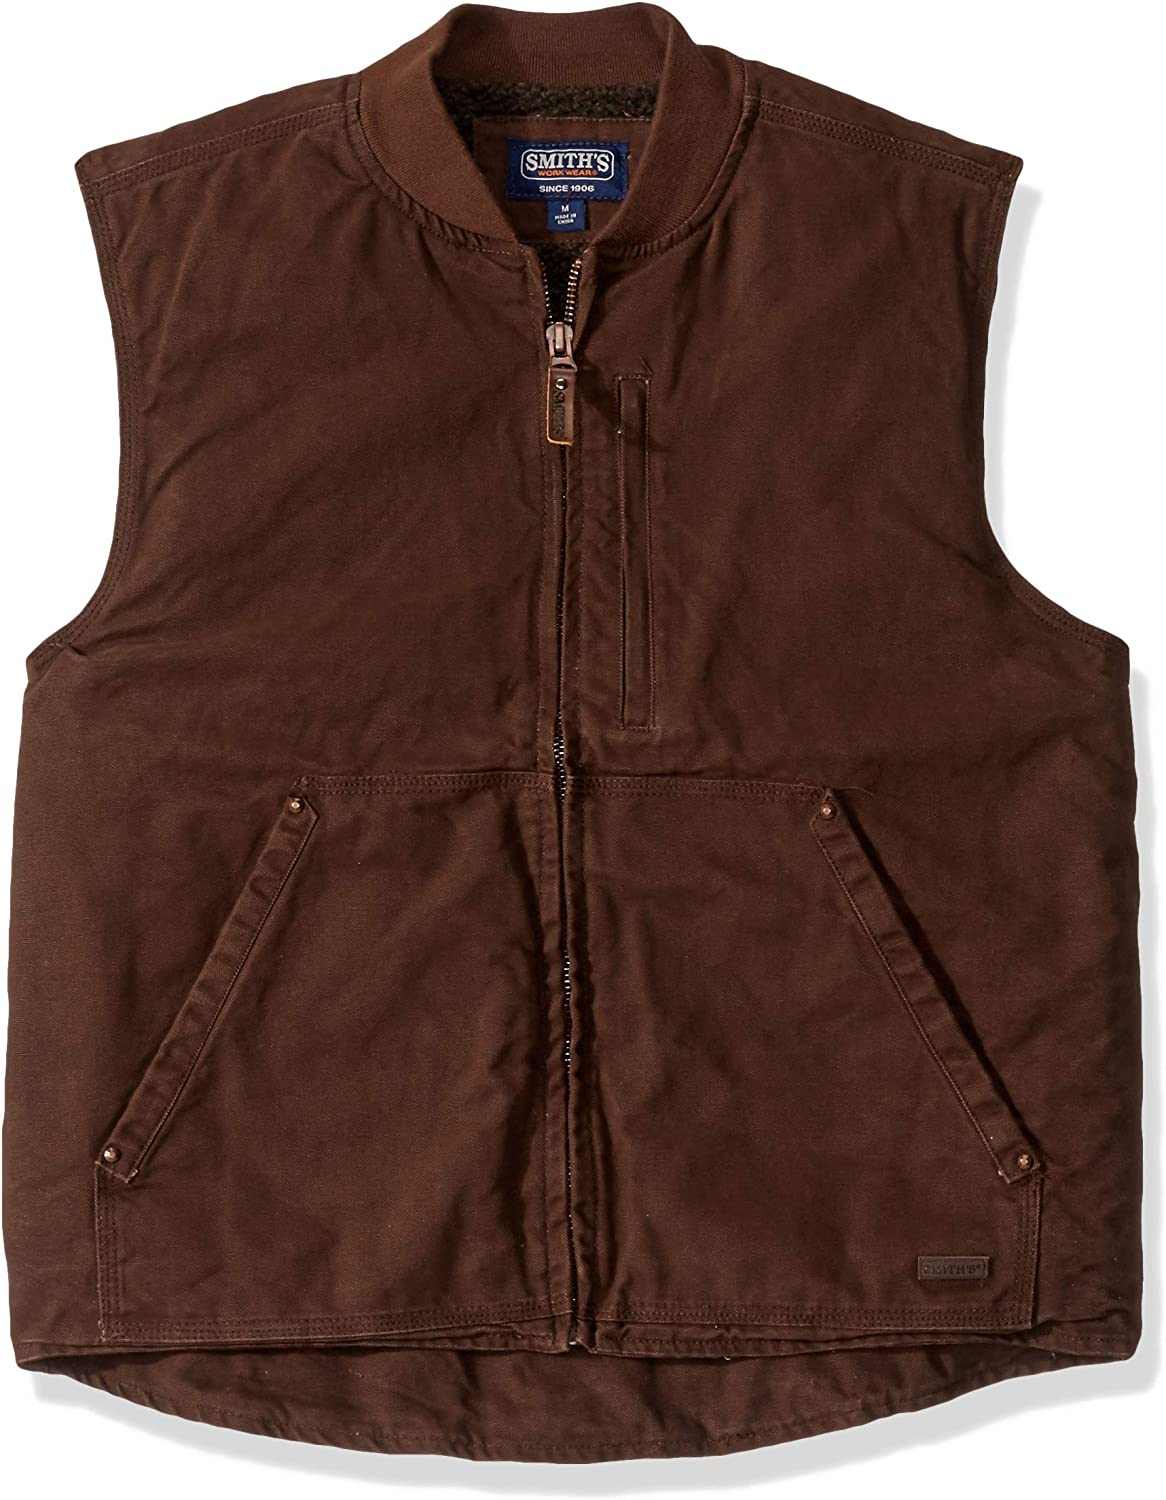 Smiths Workwear mens Sherpa-lined Duck Canvas Vest Work Utility Outerwear